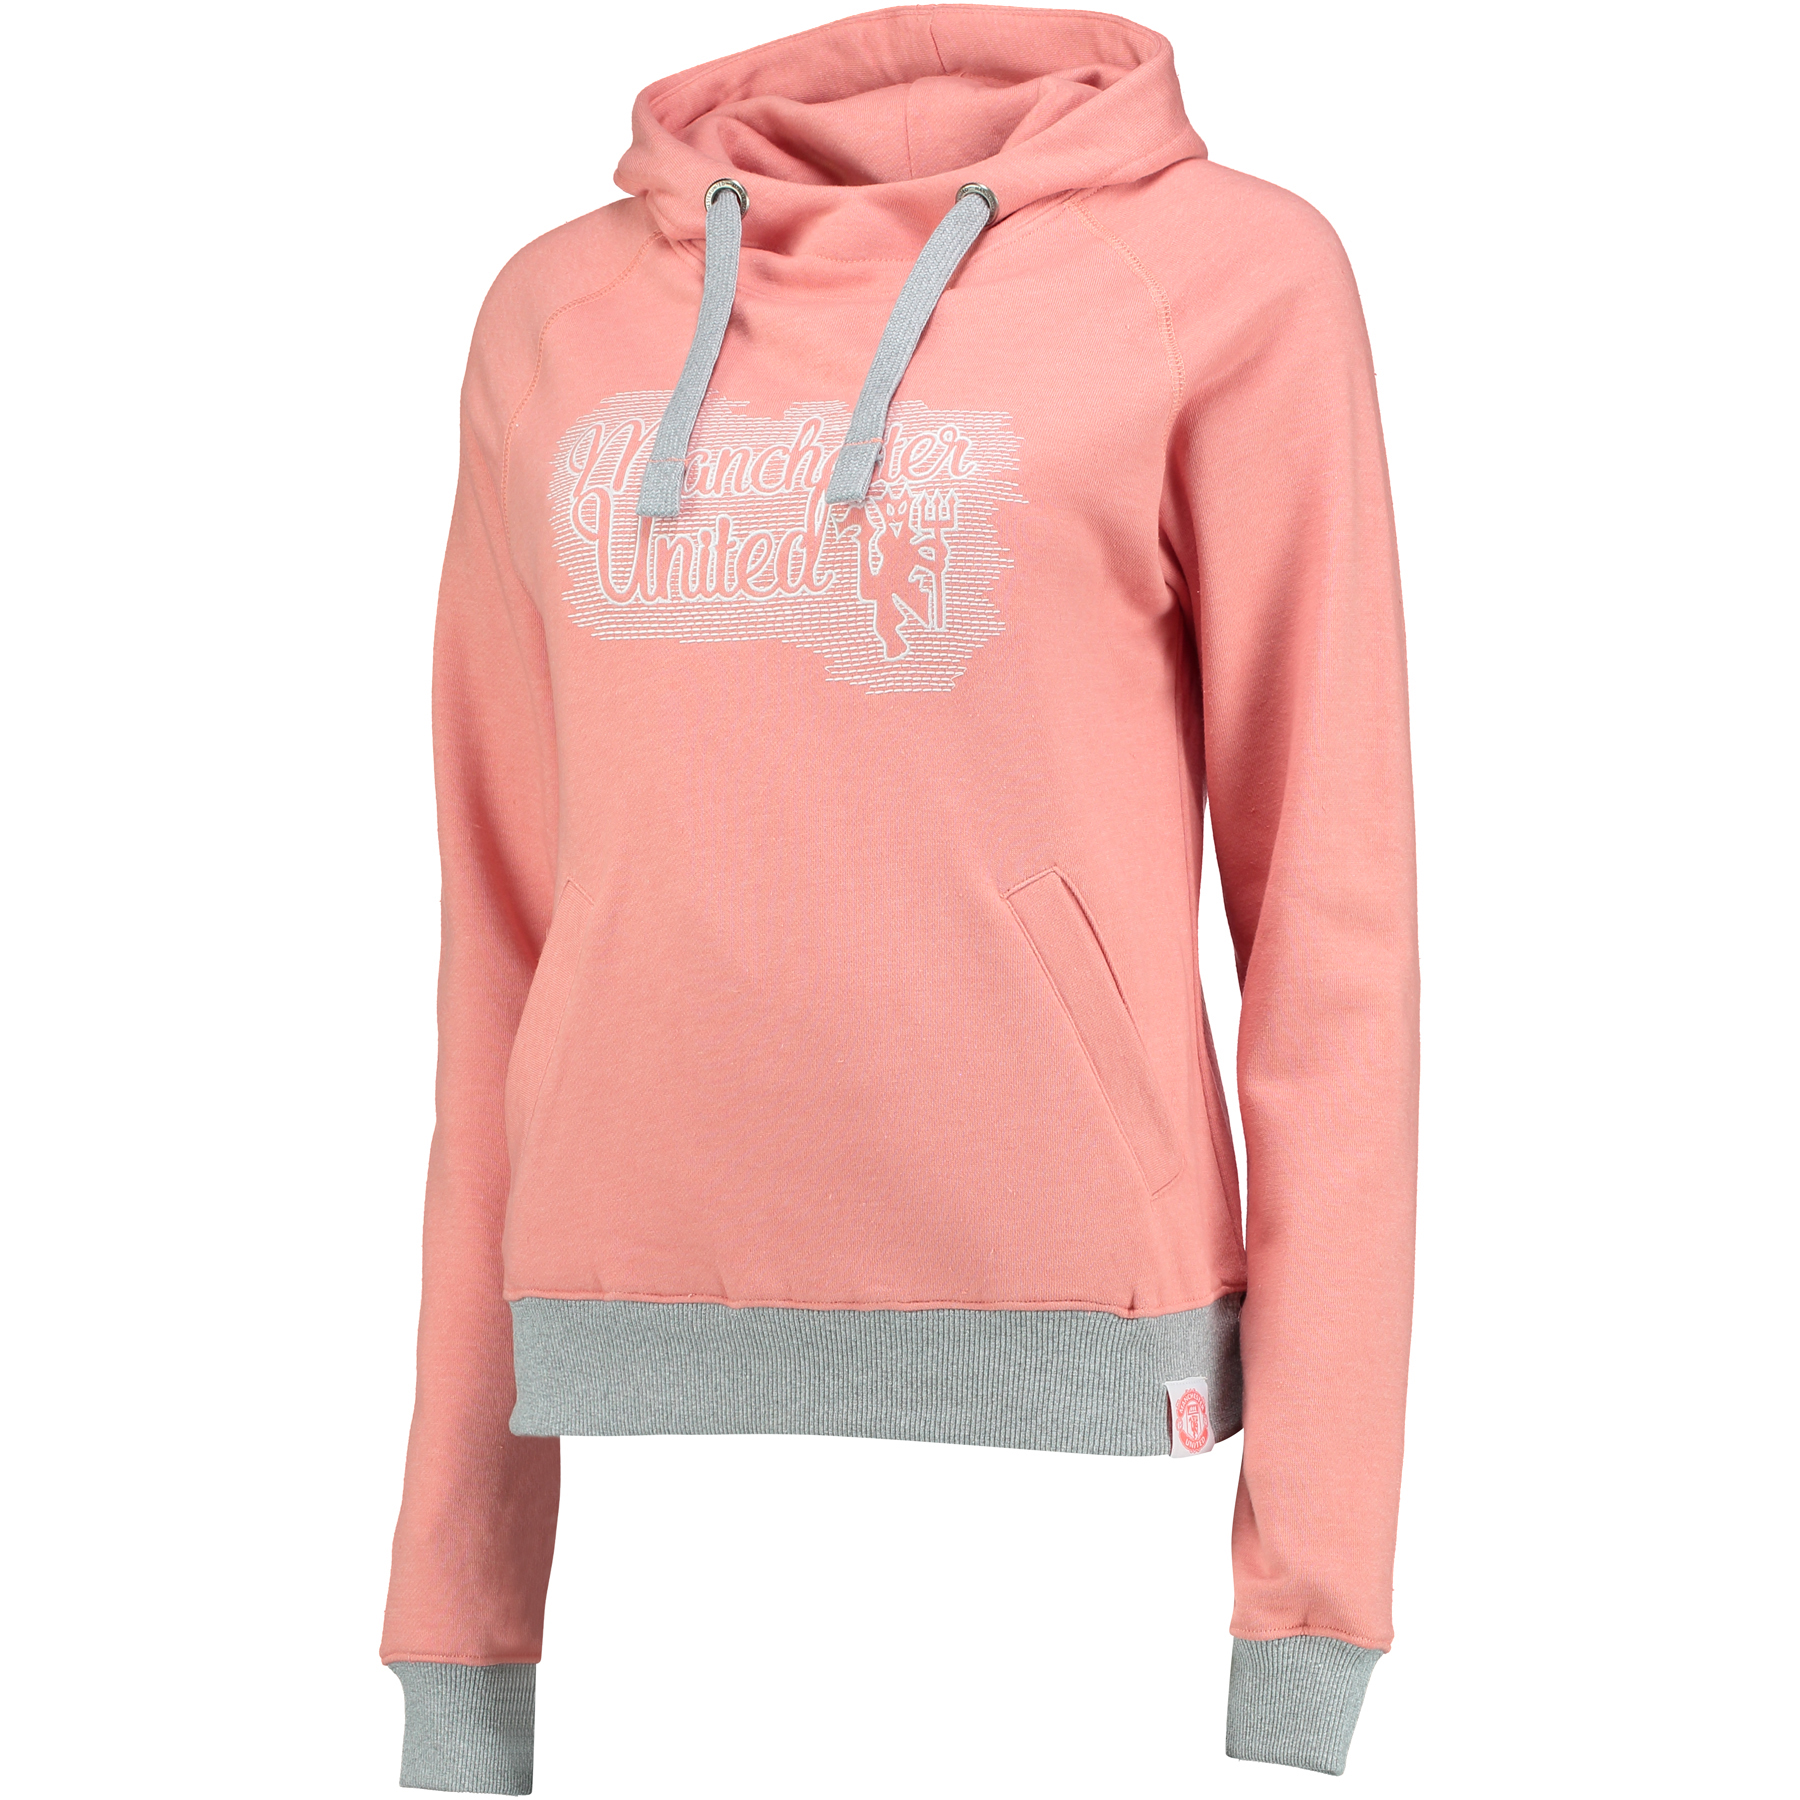 Manchester United Embroidered Slouch Fit Hoodie - Peach Echo - Womens